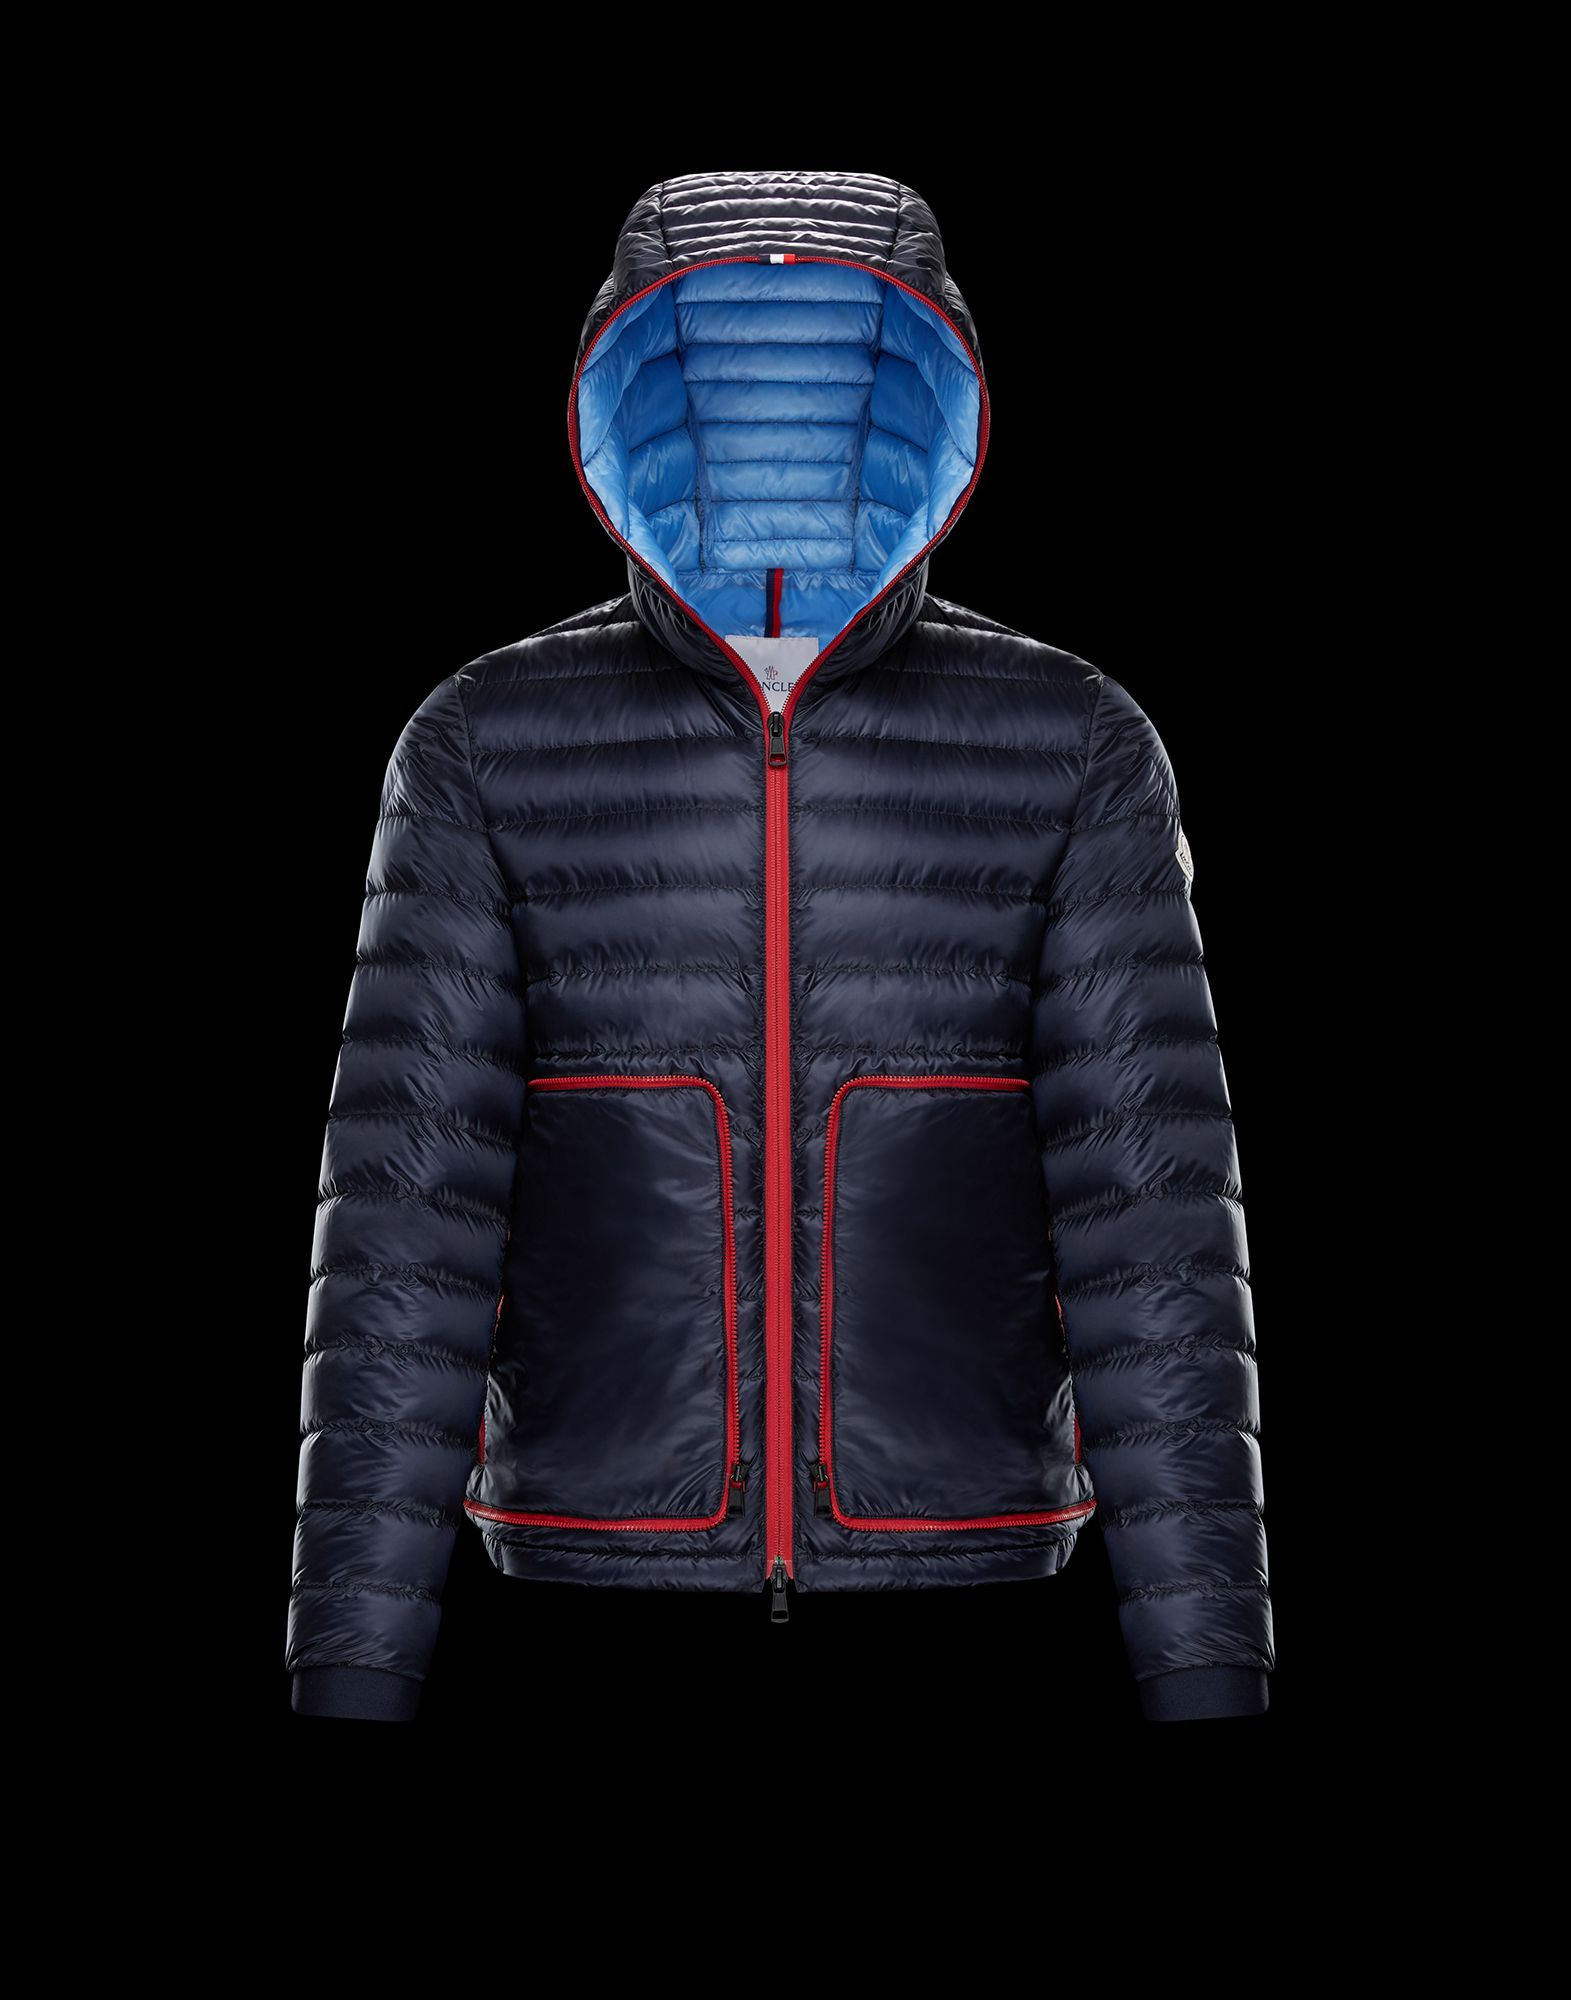 Moncler ARDECHOIS in Outerwear for men Official Online